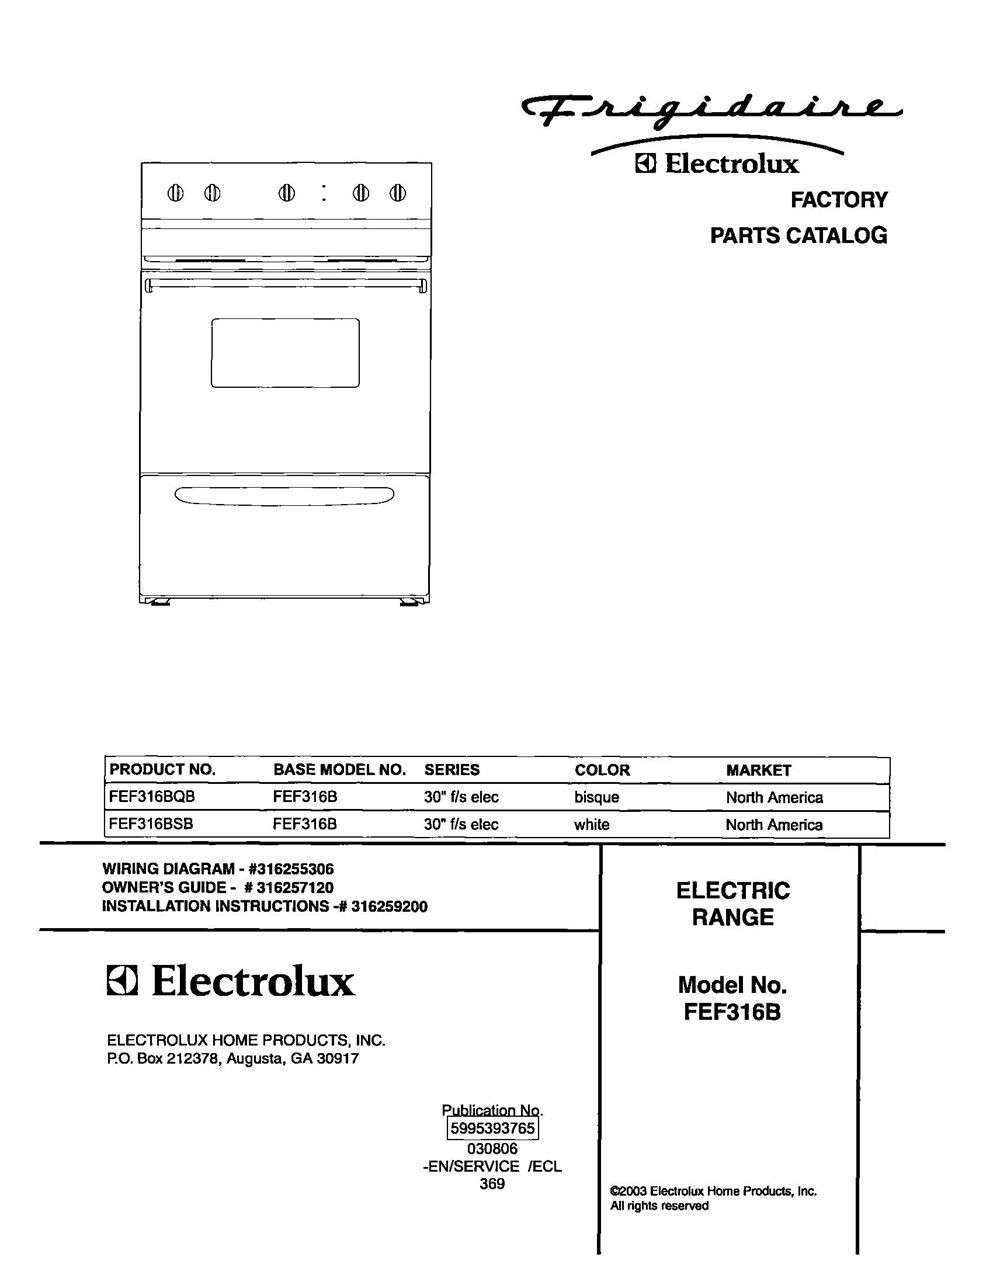 Fef316bsb Frigidaire Company 07top Drawer 09door 01cover 10wiring Diagram 11wiring